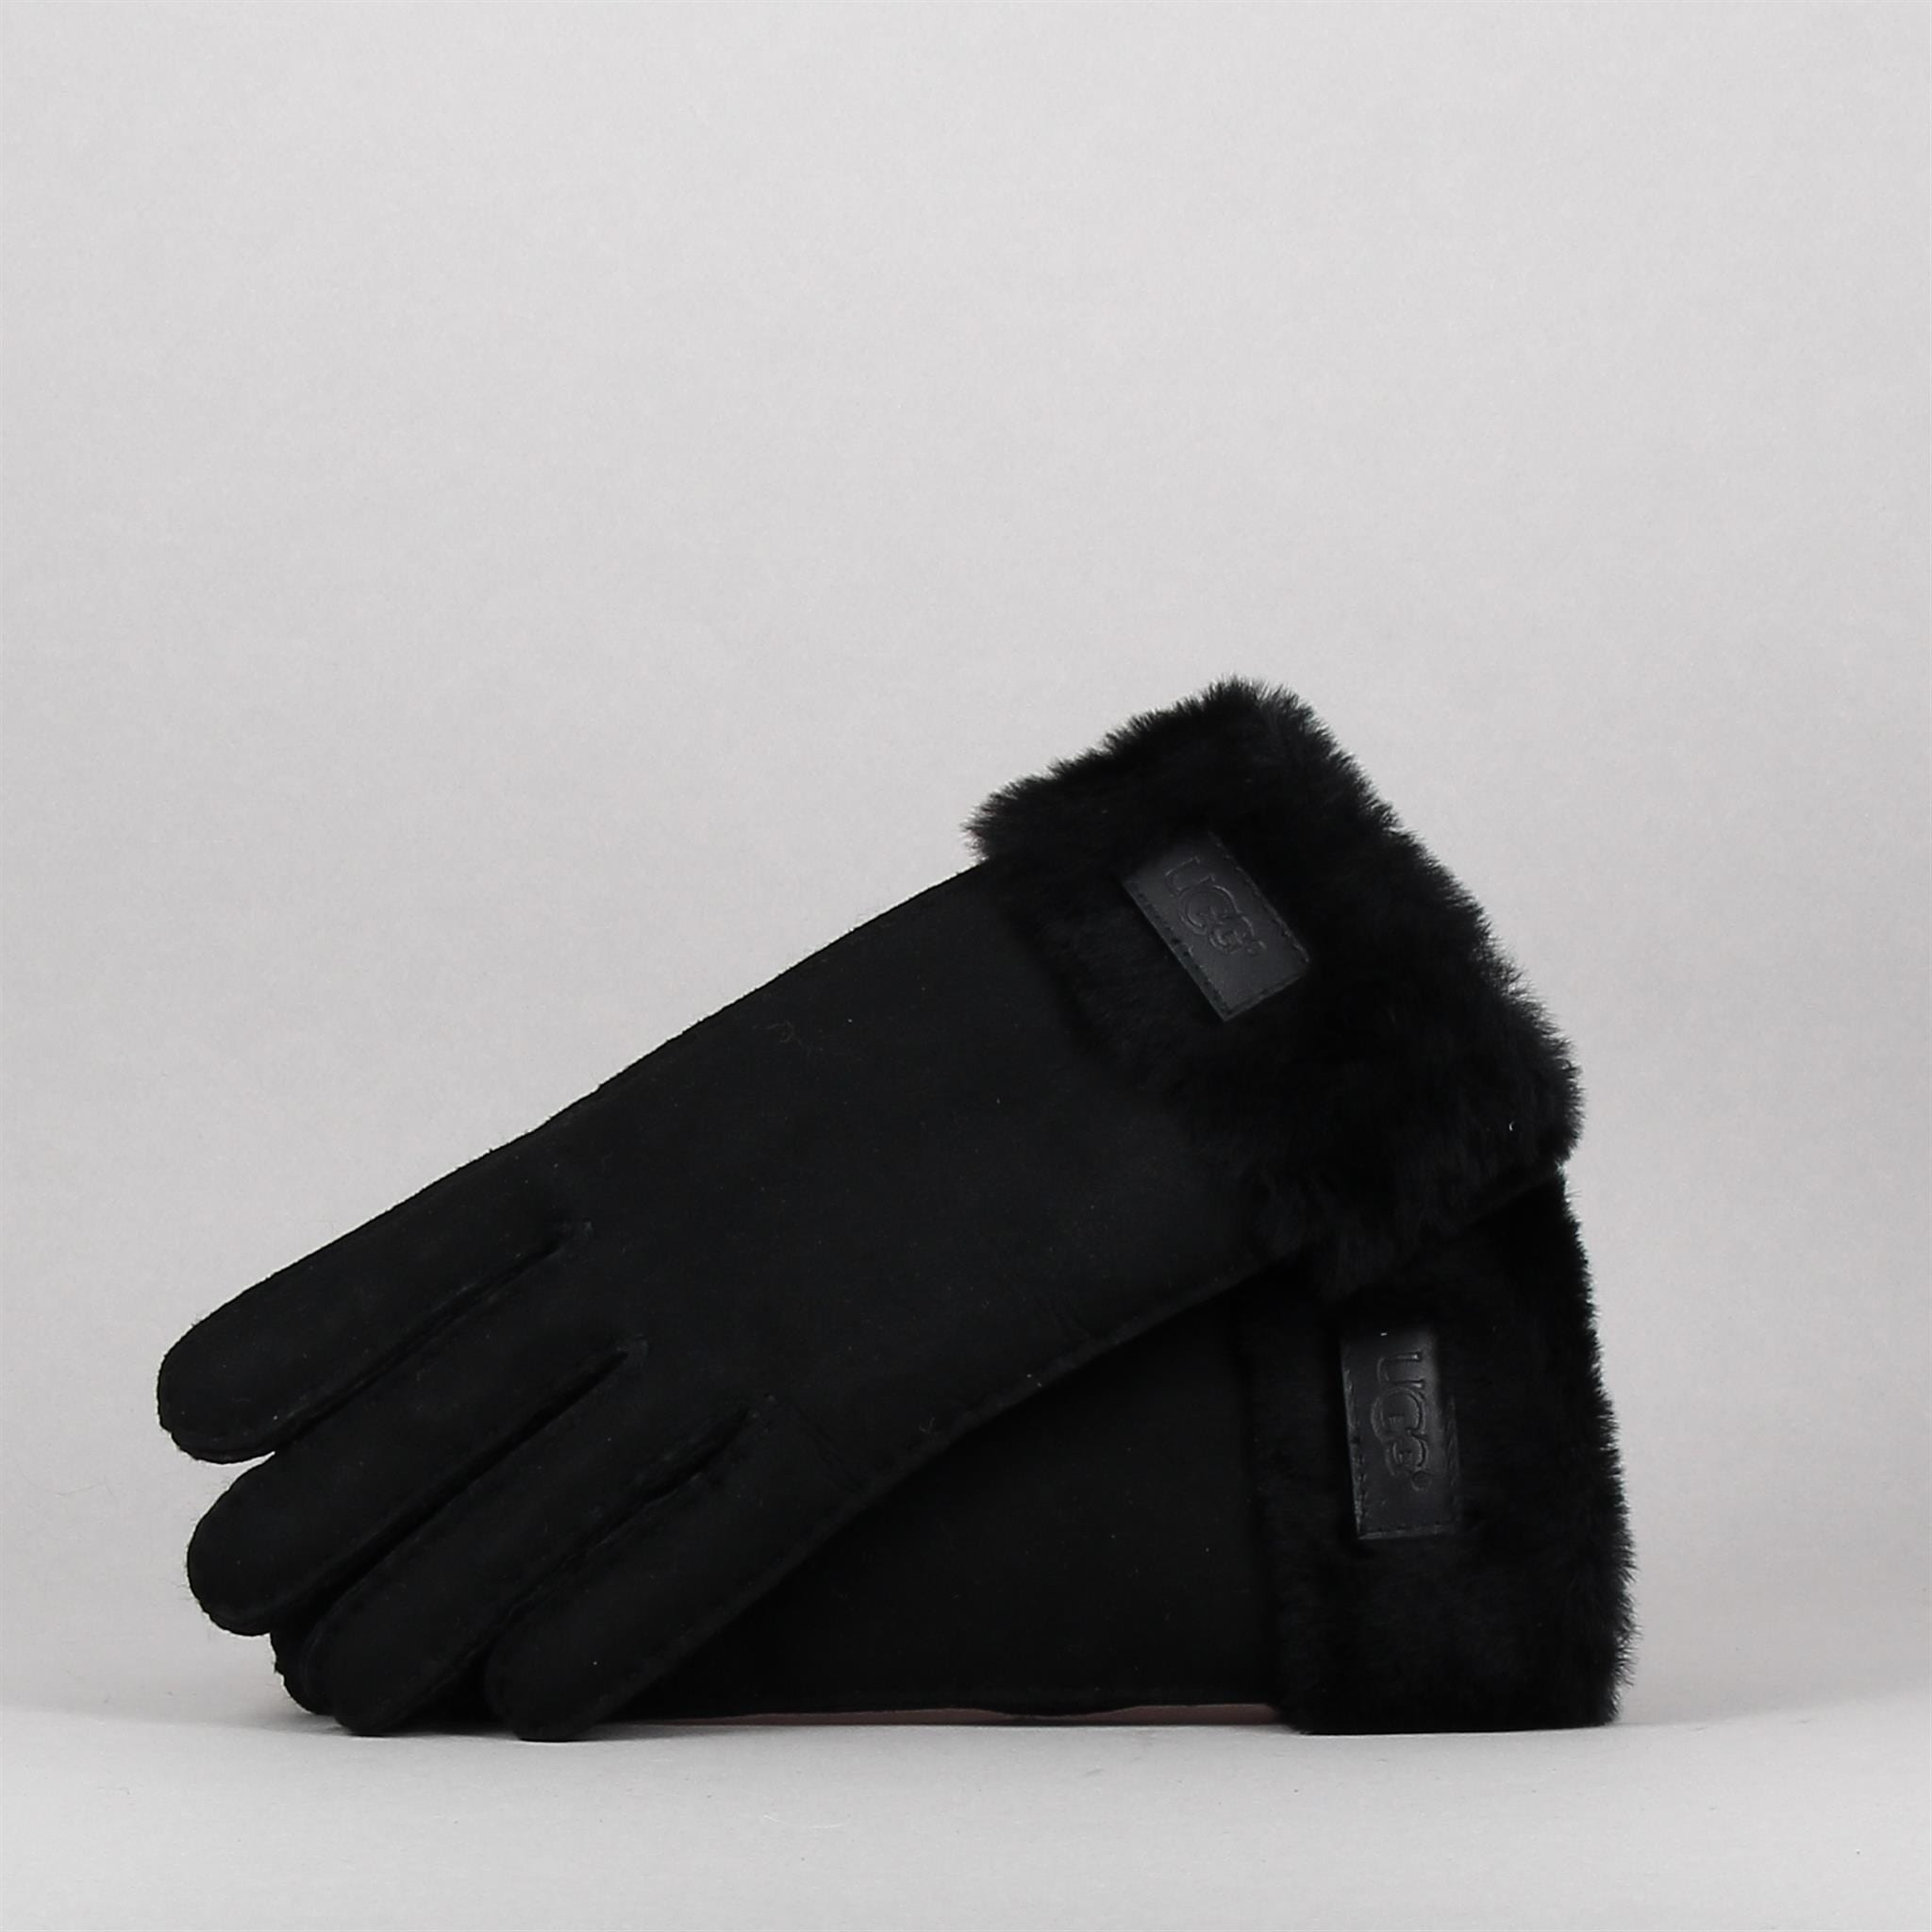 turn-cuff-glove-bx-noir-162332674-0.jpg